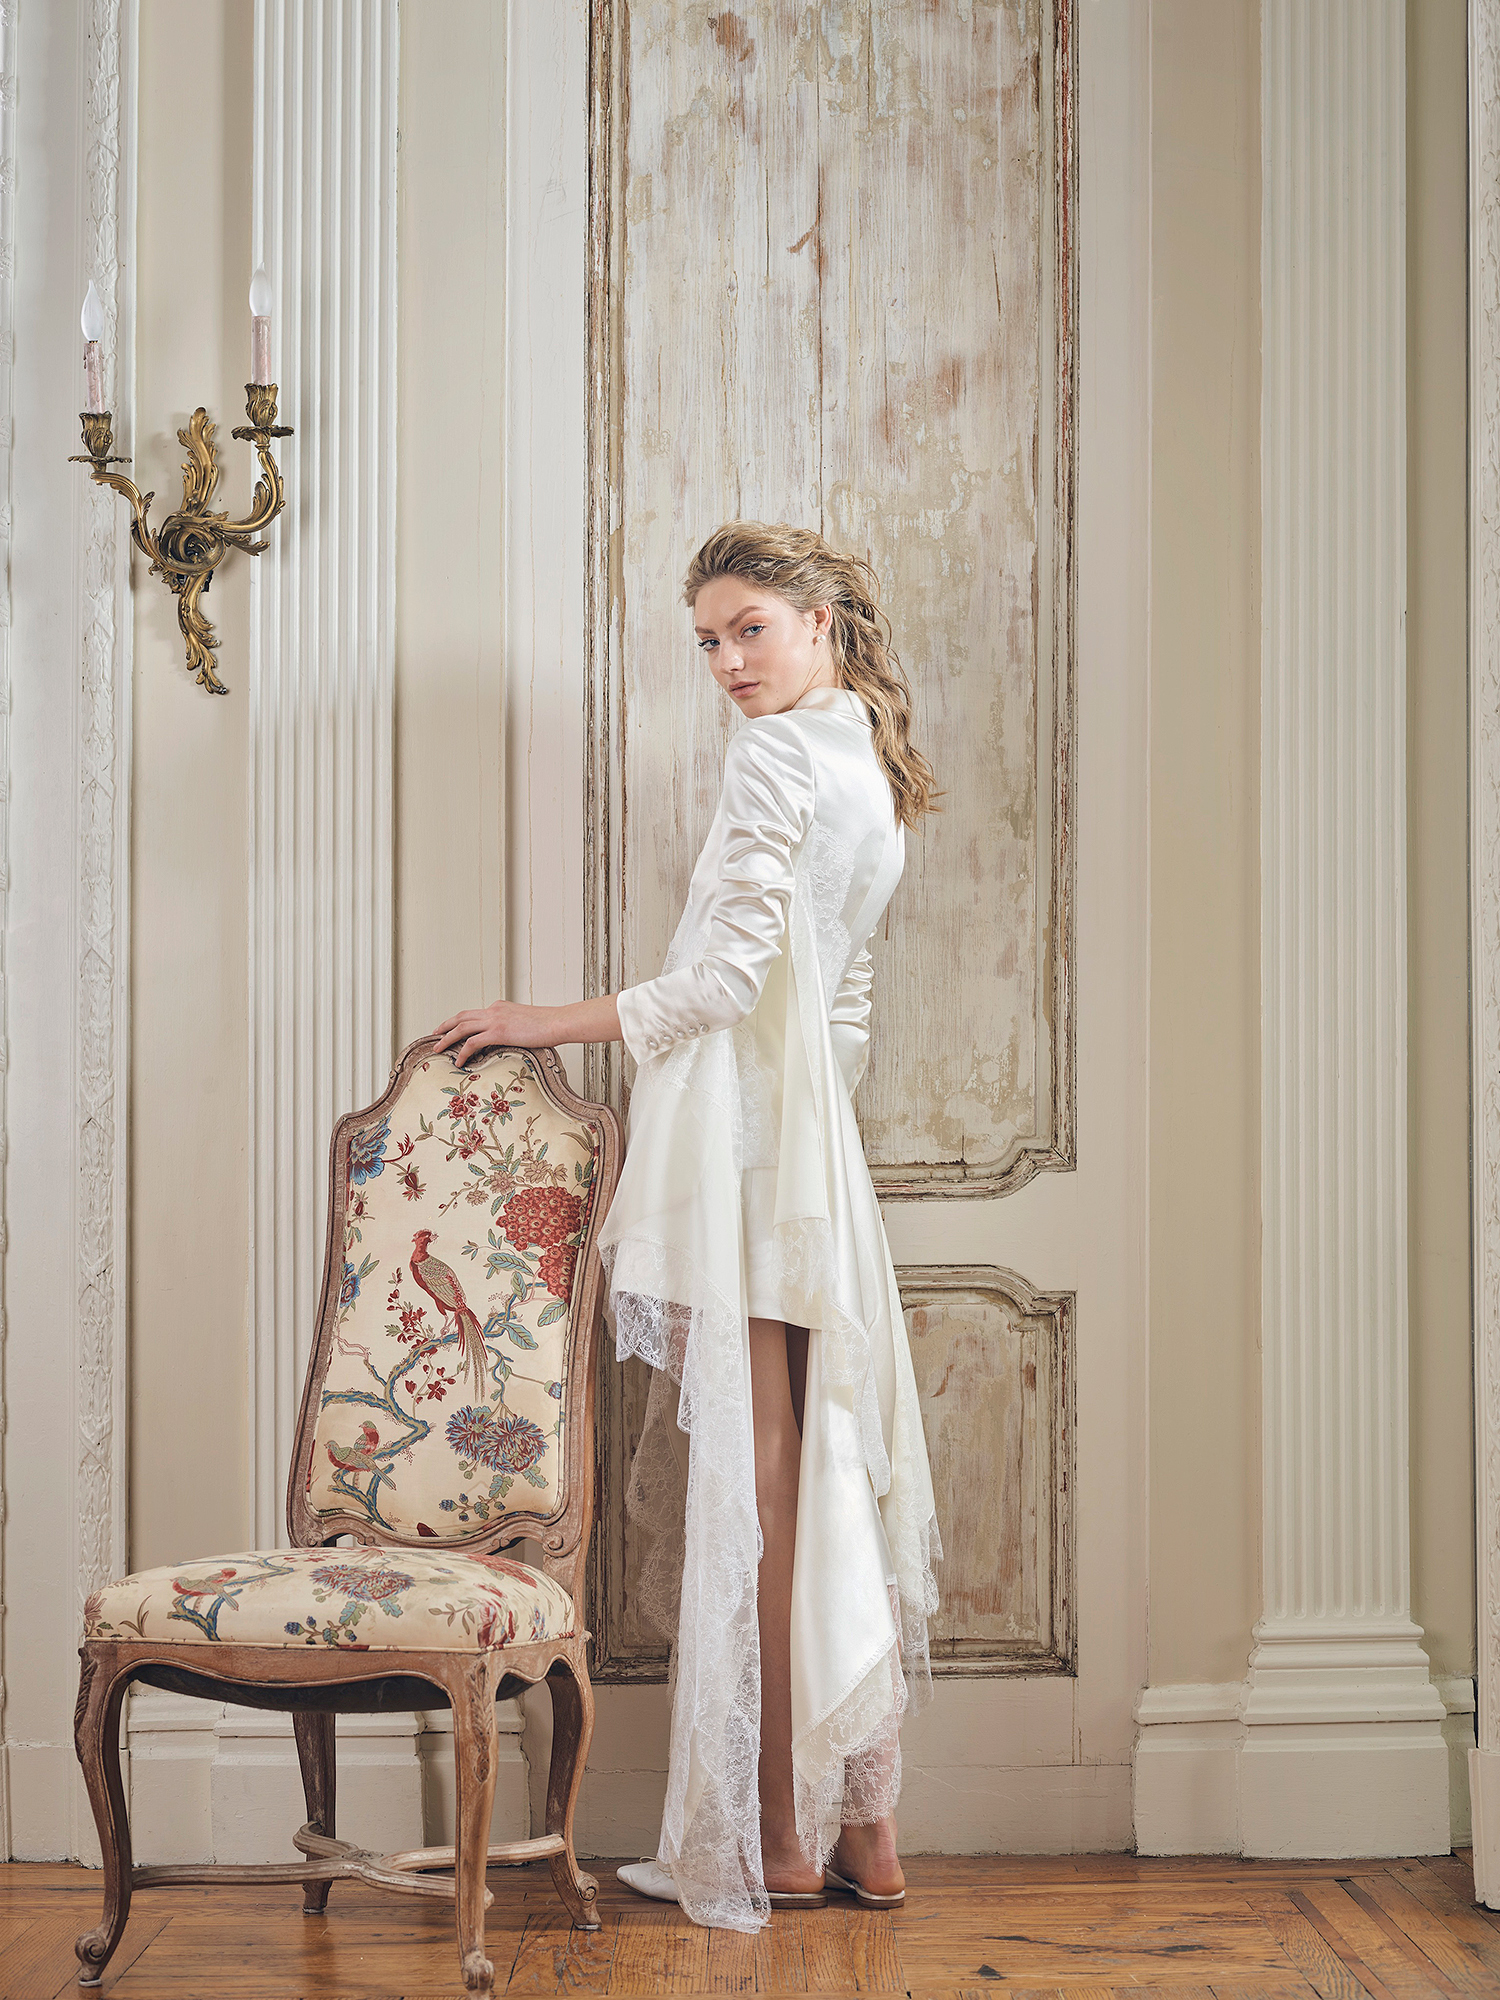 danielle frankel wedding dress spring 2019 short with collar and panels